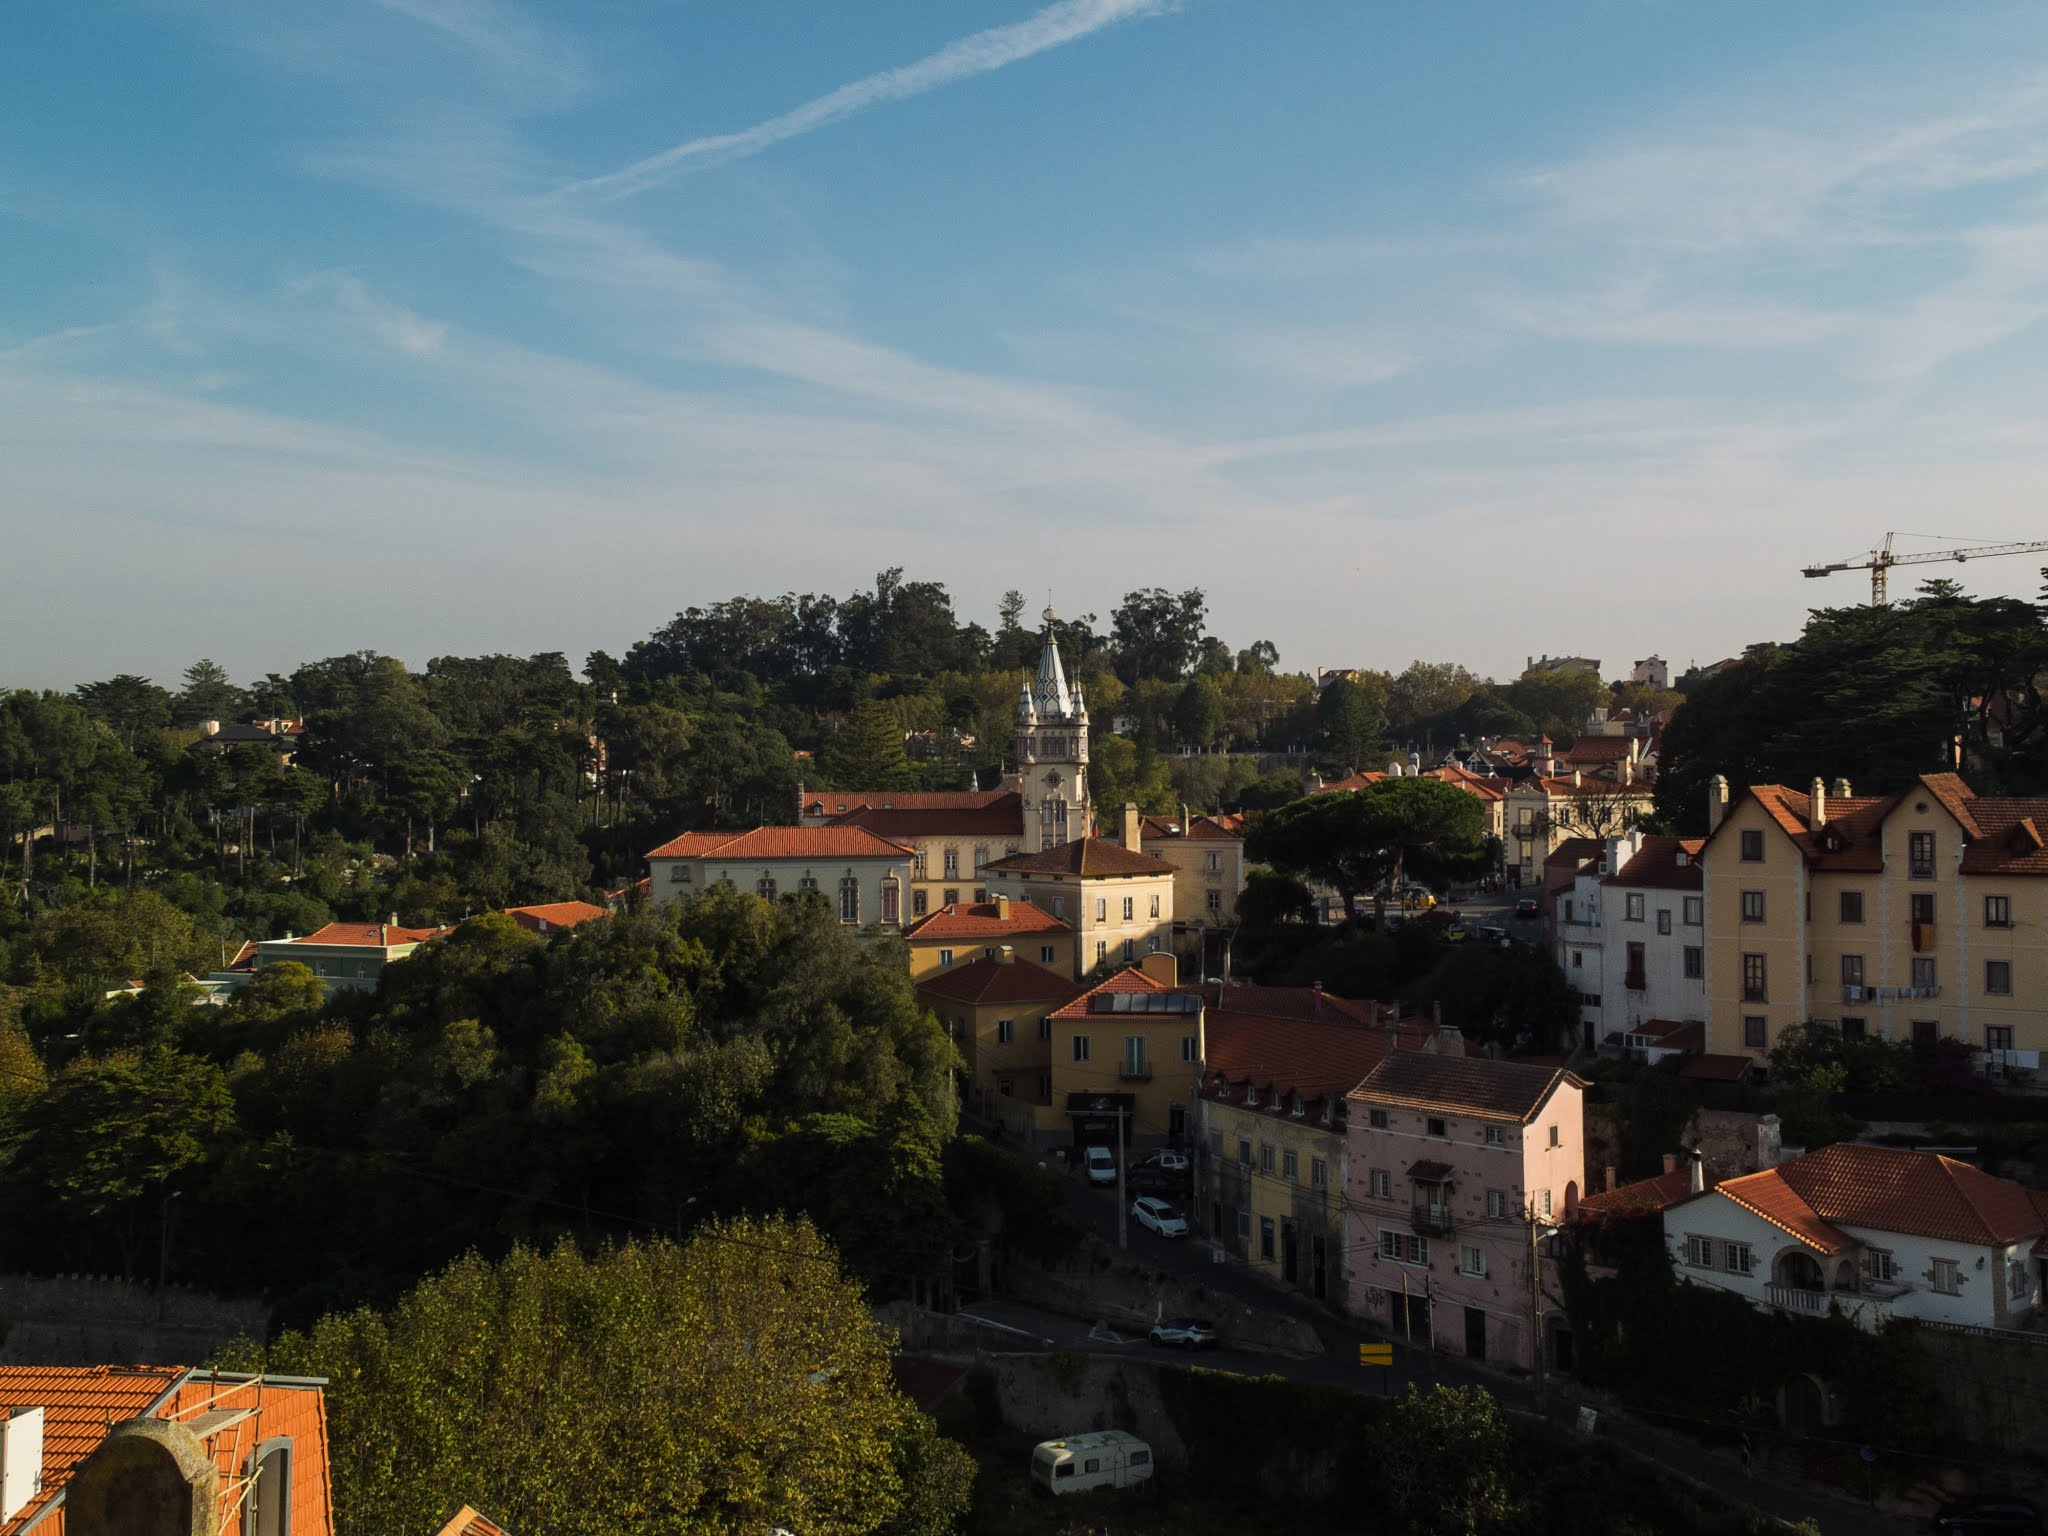 A view of the Sintra Town Hall across the hillside.